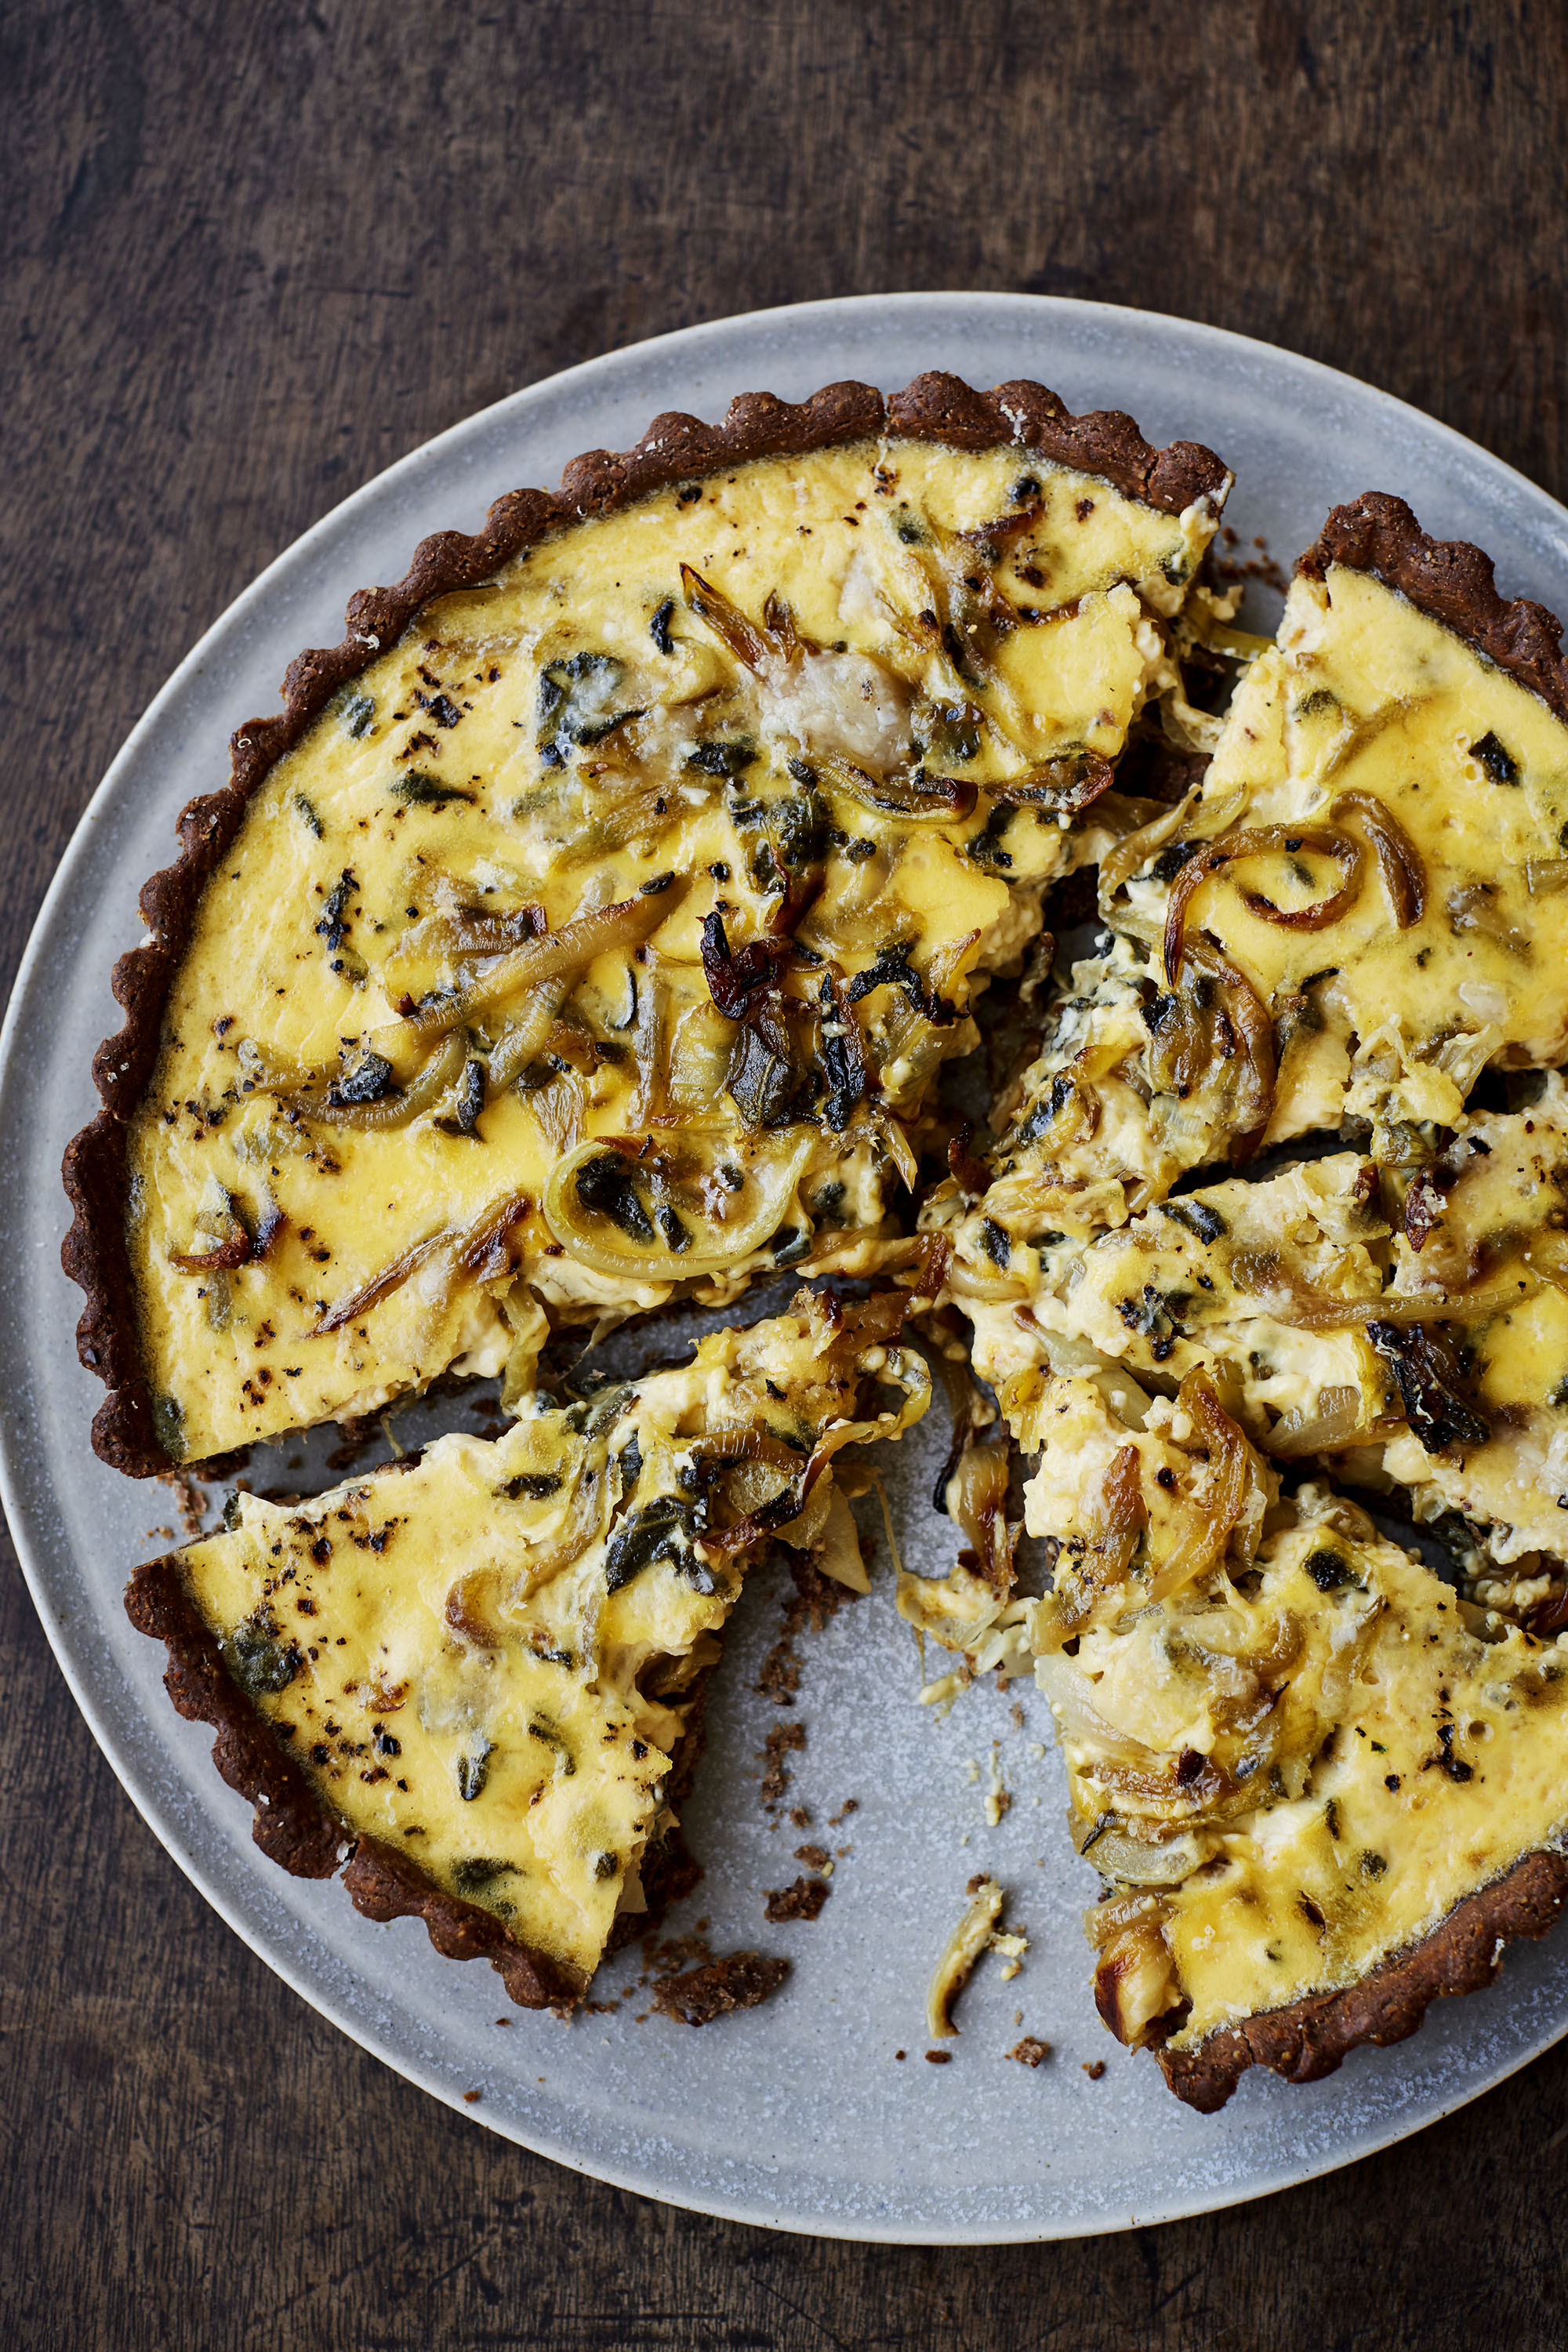 sage & onion quiche with a chestnut crust   caramelised onions and chestnut flour pair beautifully in this creamy quiche with a gluten free crust.  Photo © Laura Edwards